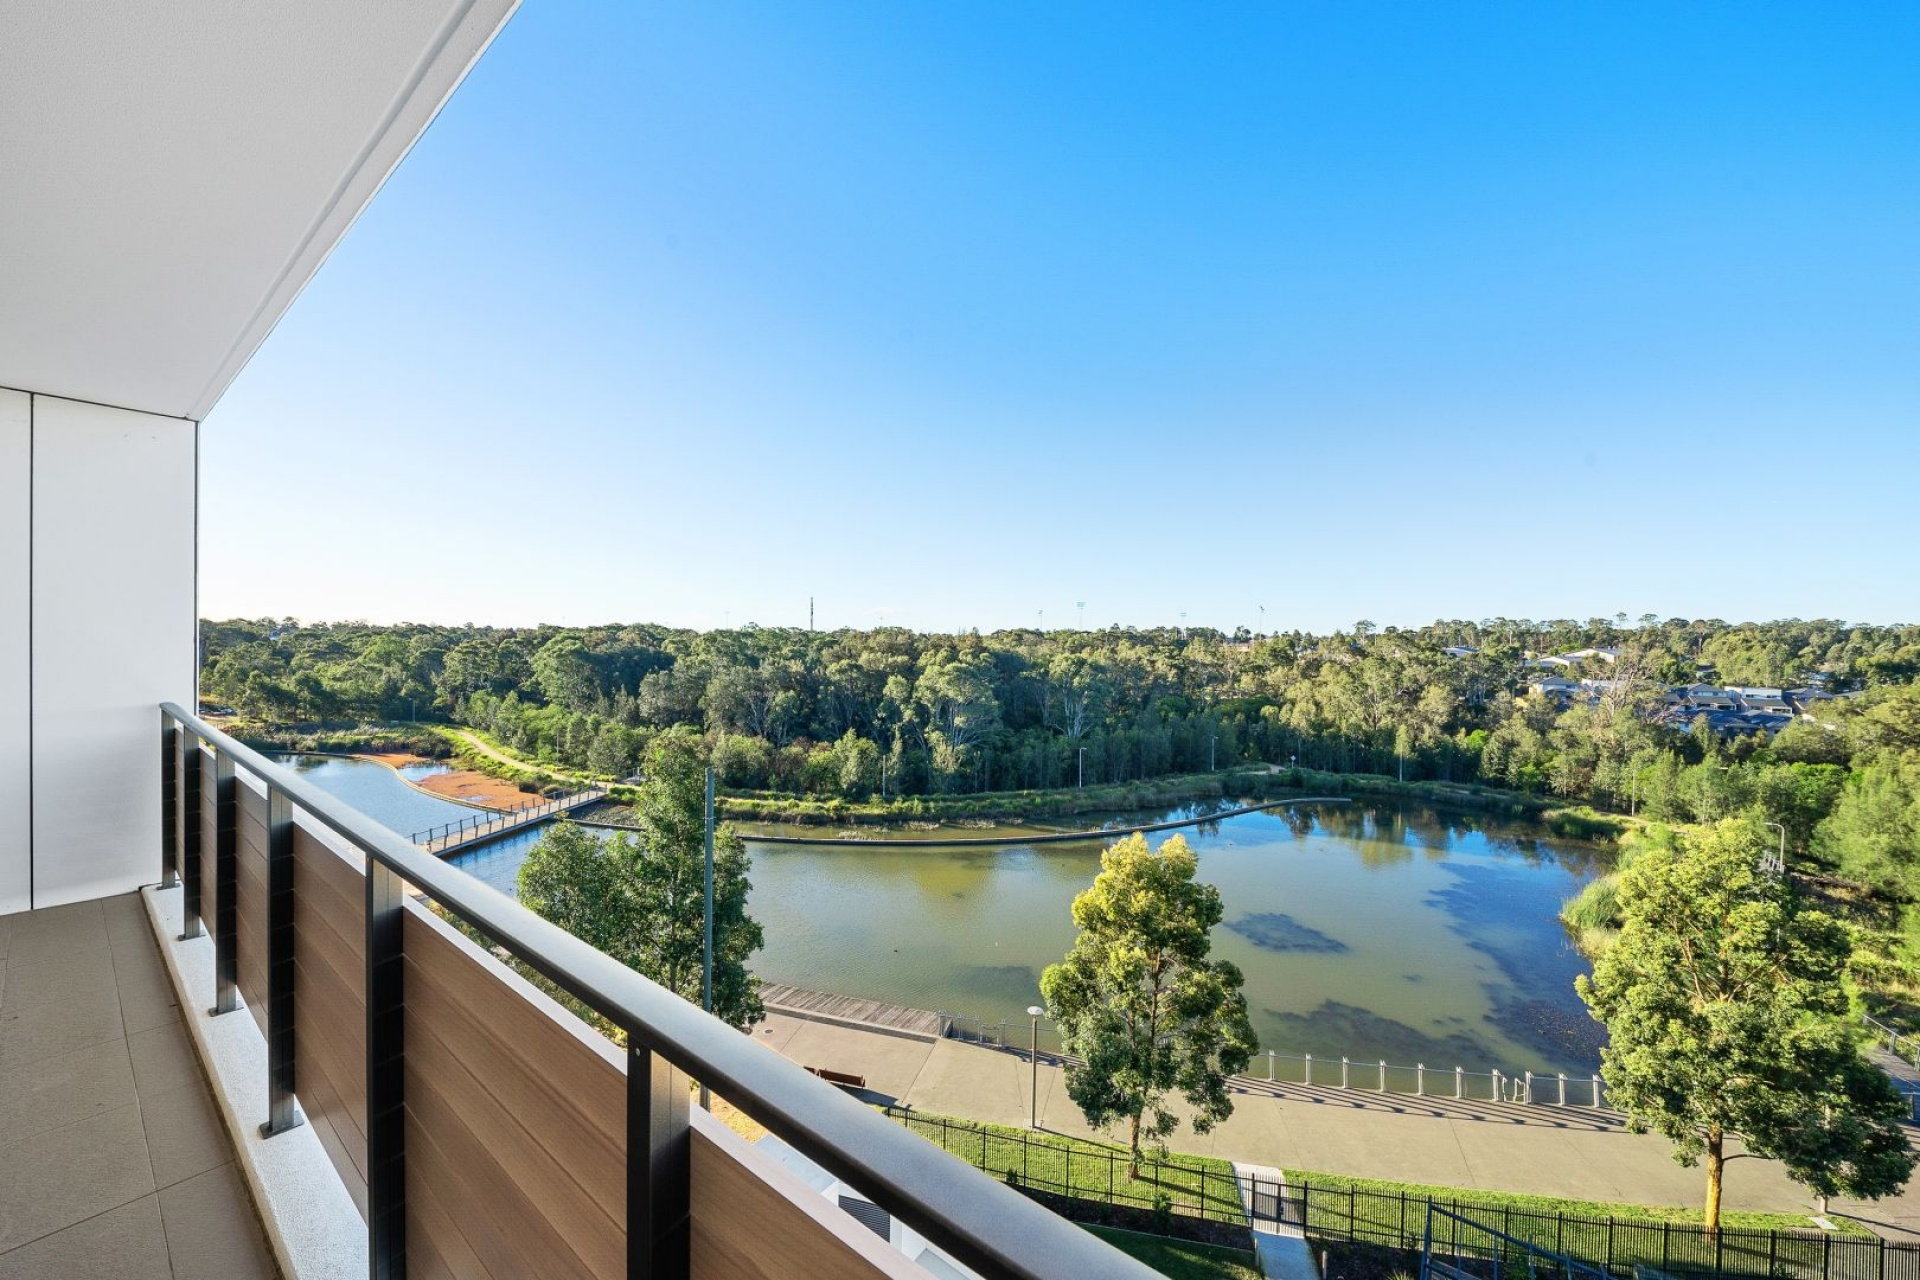 3 Bedrooms, Apartment, Sold , Caddies Boulevard, 2 Bathrooms, Listing ID 1333, Rouse Hill, NSW, Australia,